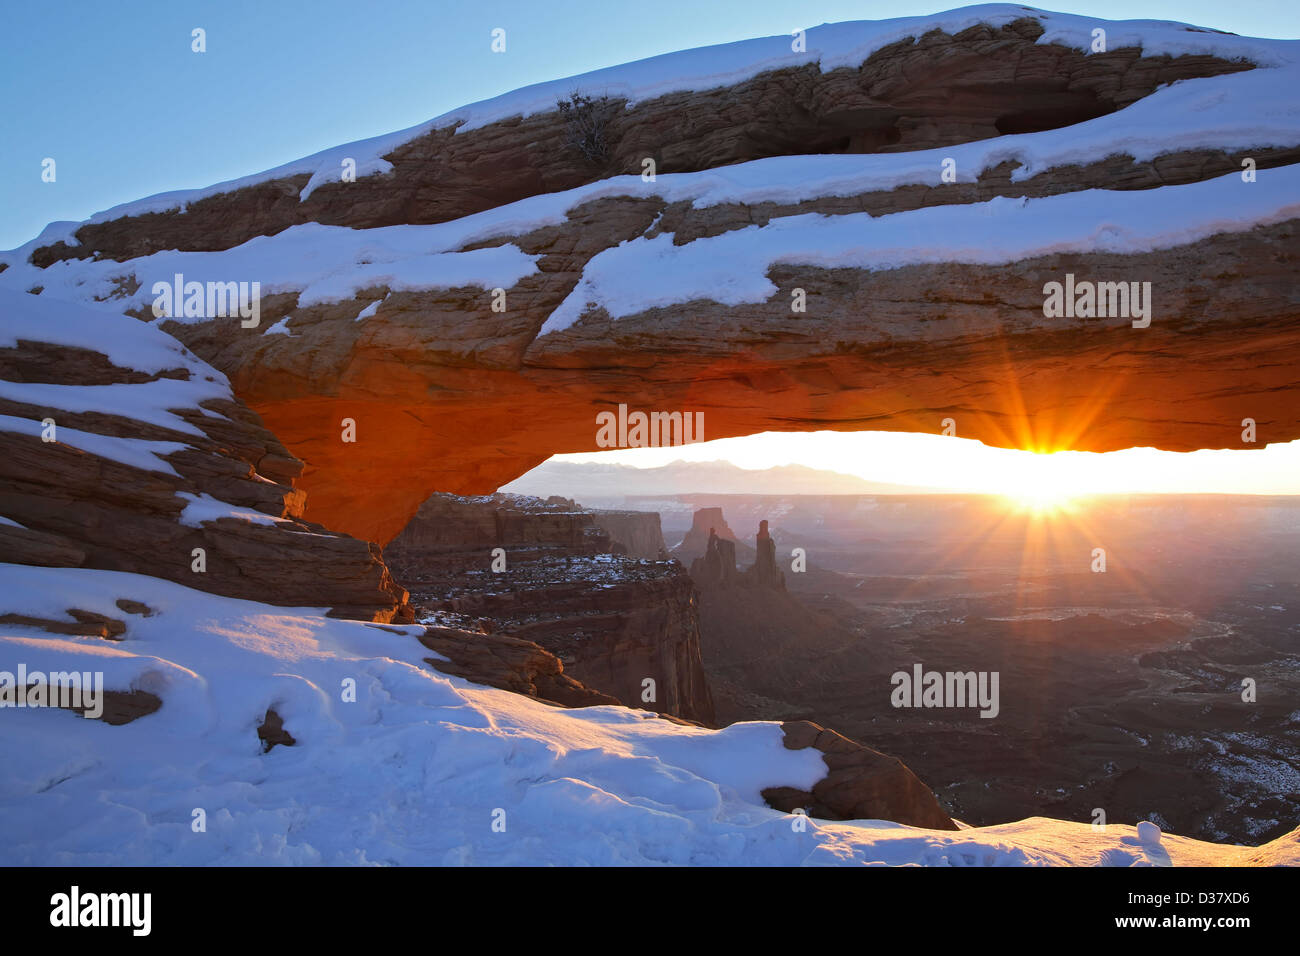 Mesa Arch covered in snow and sunburst, Island in the Sky District, Canyonlands National Park, Utah USA - Stock Image